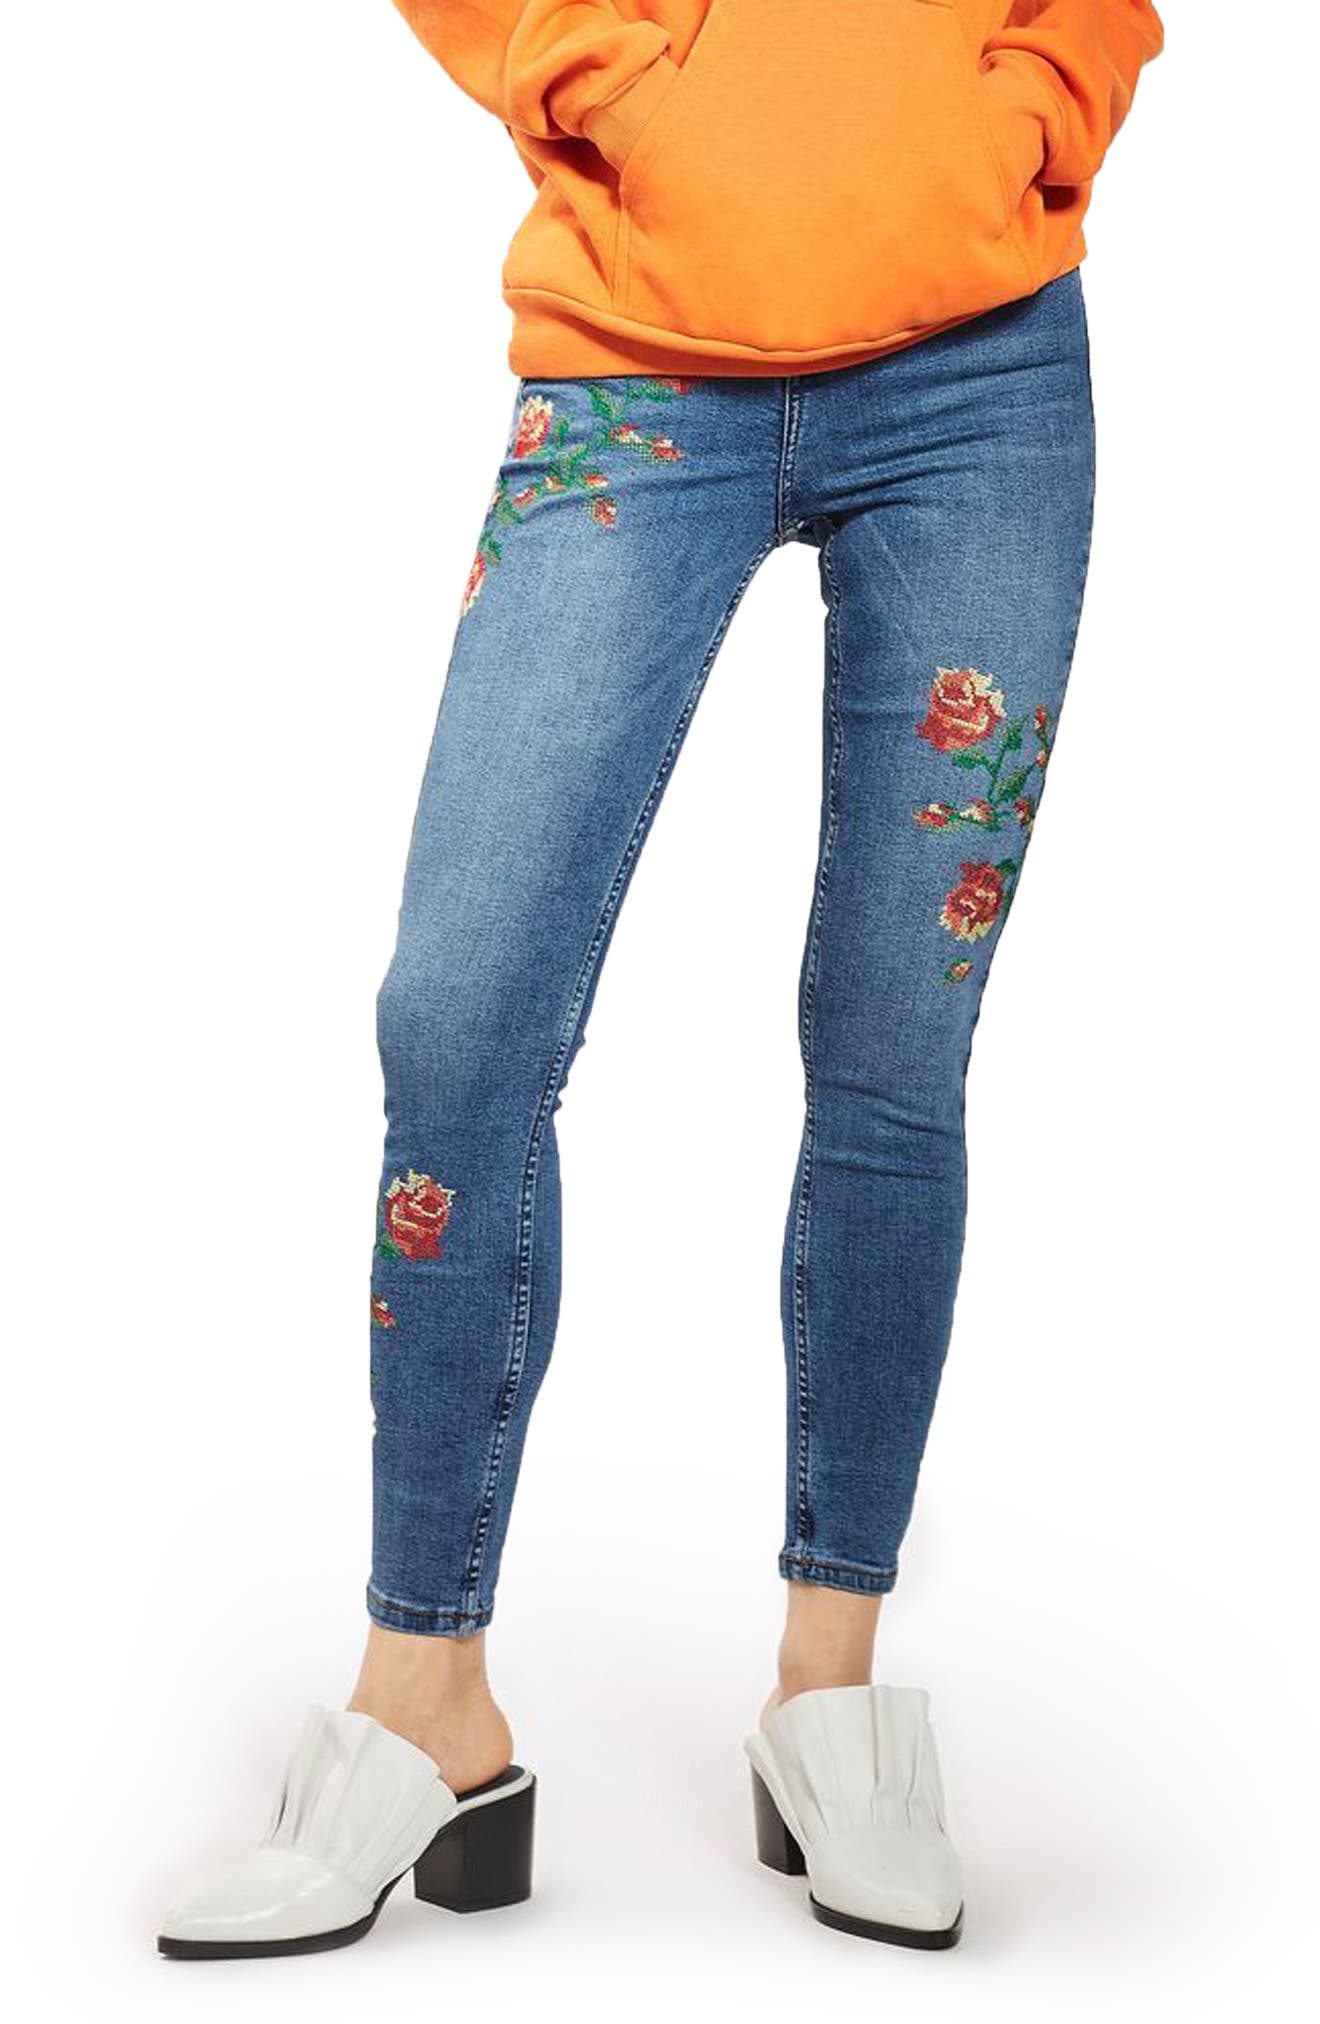 Topshop Jamie Embroidered Skinny Jeans